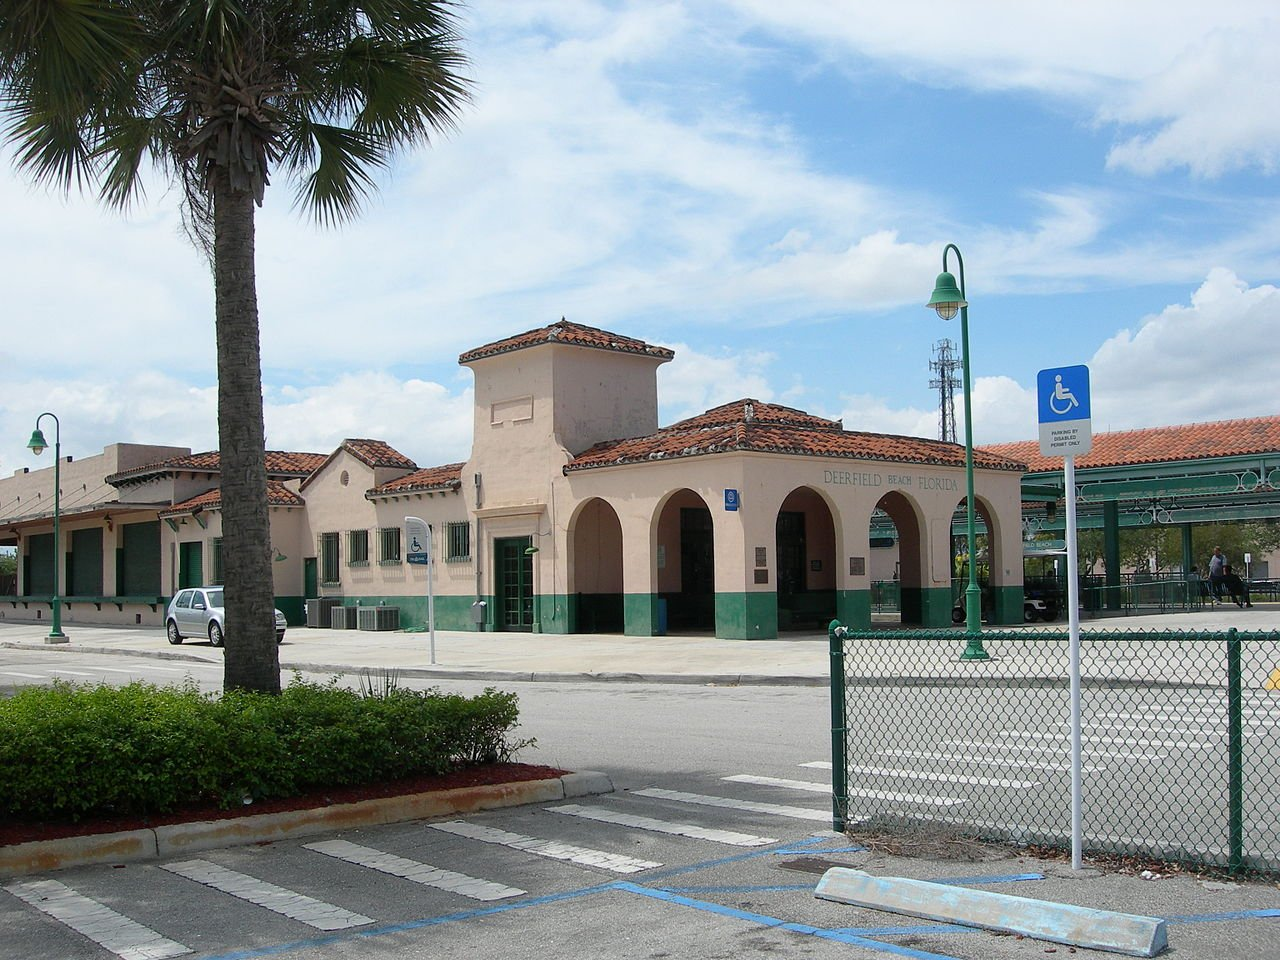 The Old Seaboard Air Line Railway Station was built in 1926 and as such is one of the oldest buildings in Deerfield Beach.